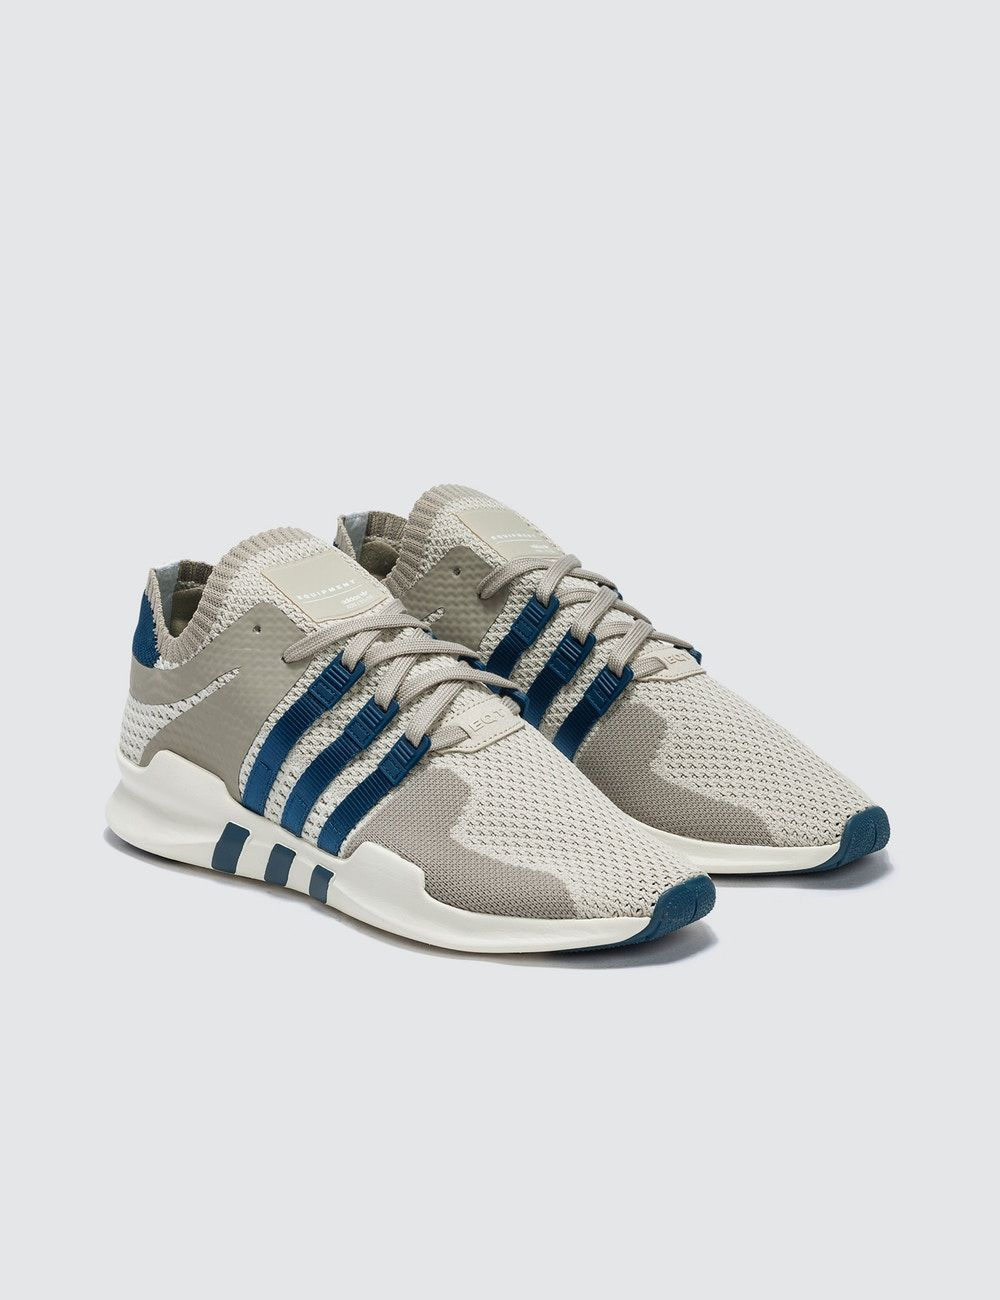 Mens Adidas Originals Eqt Support Adv Primeknit Shoes Superior